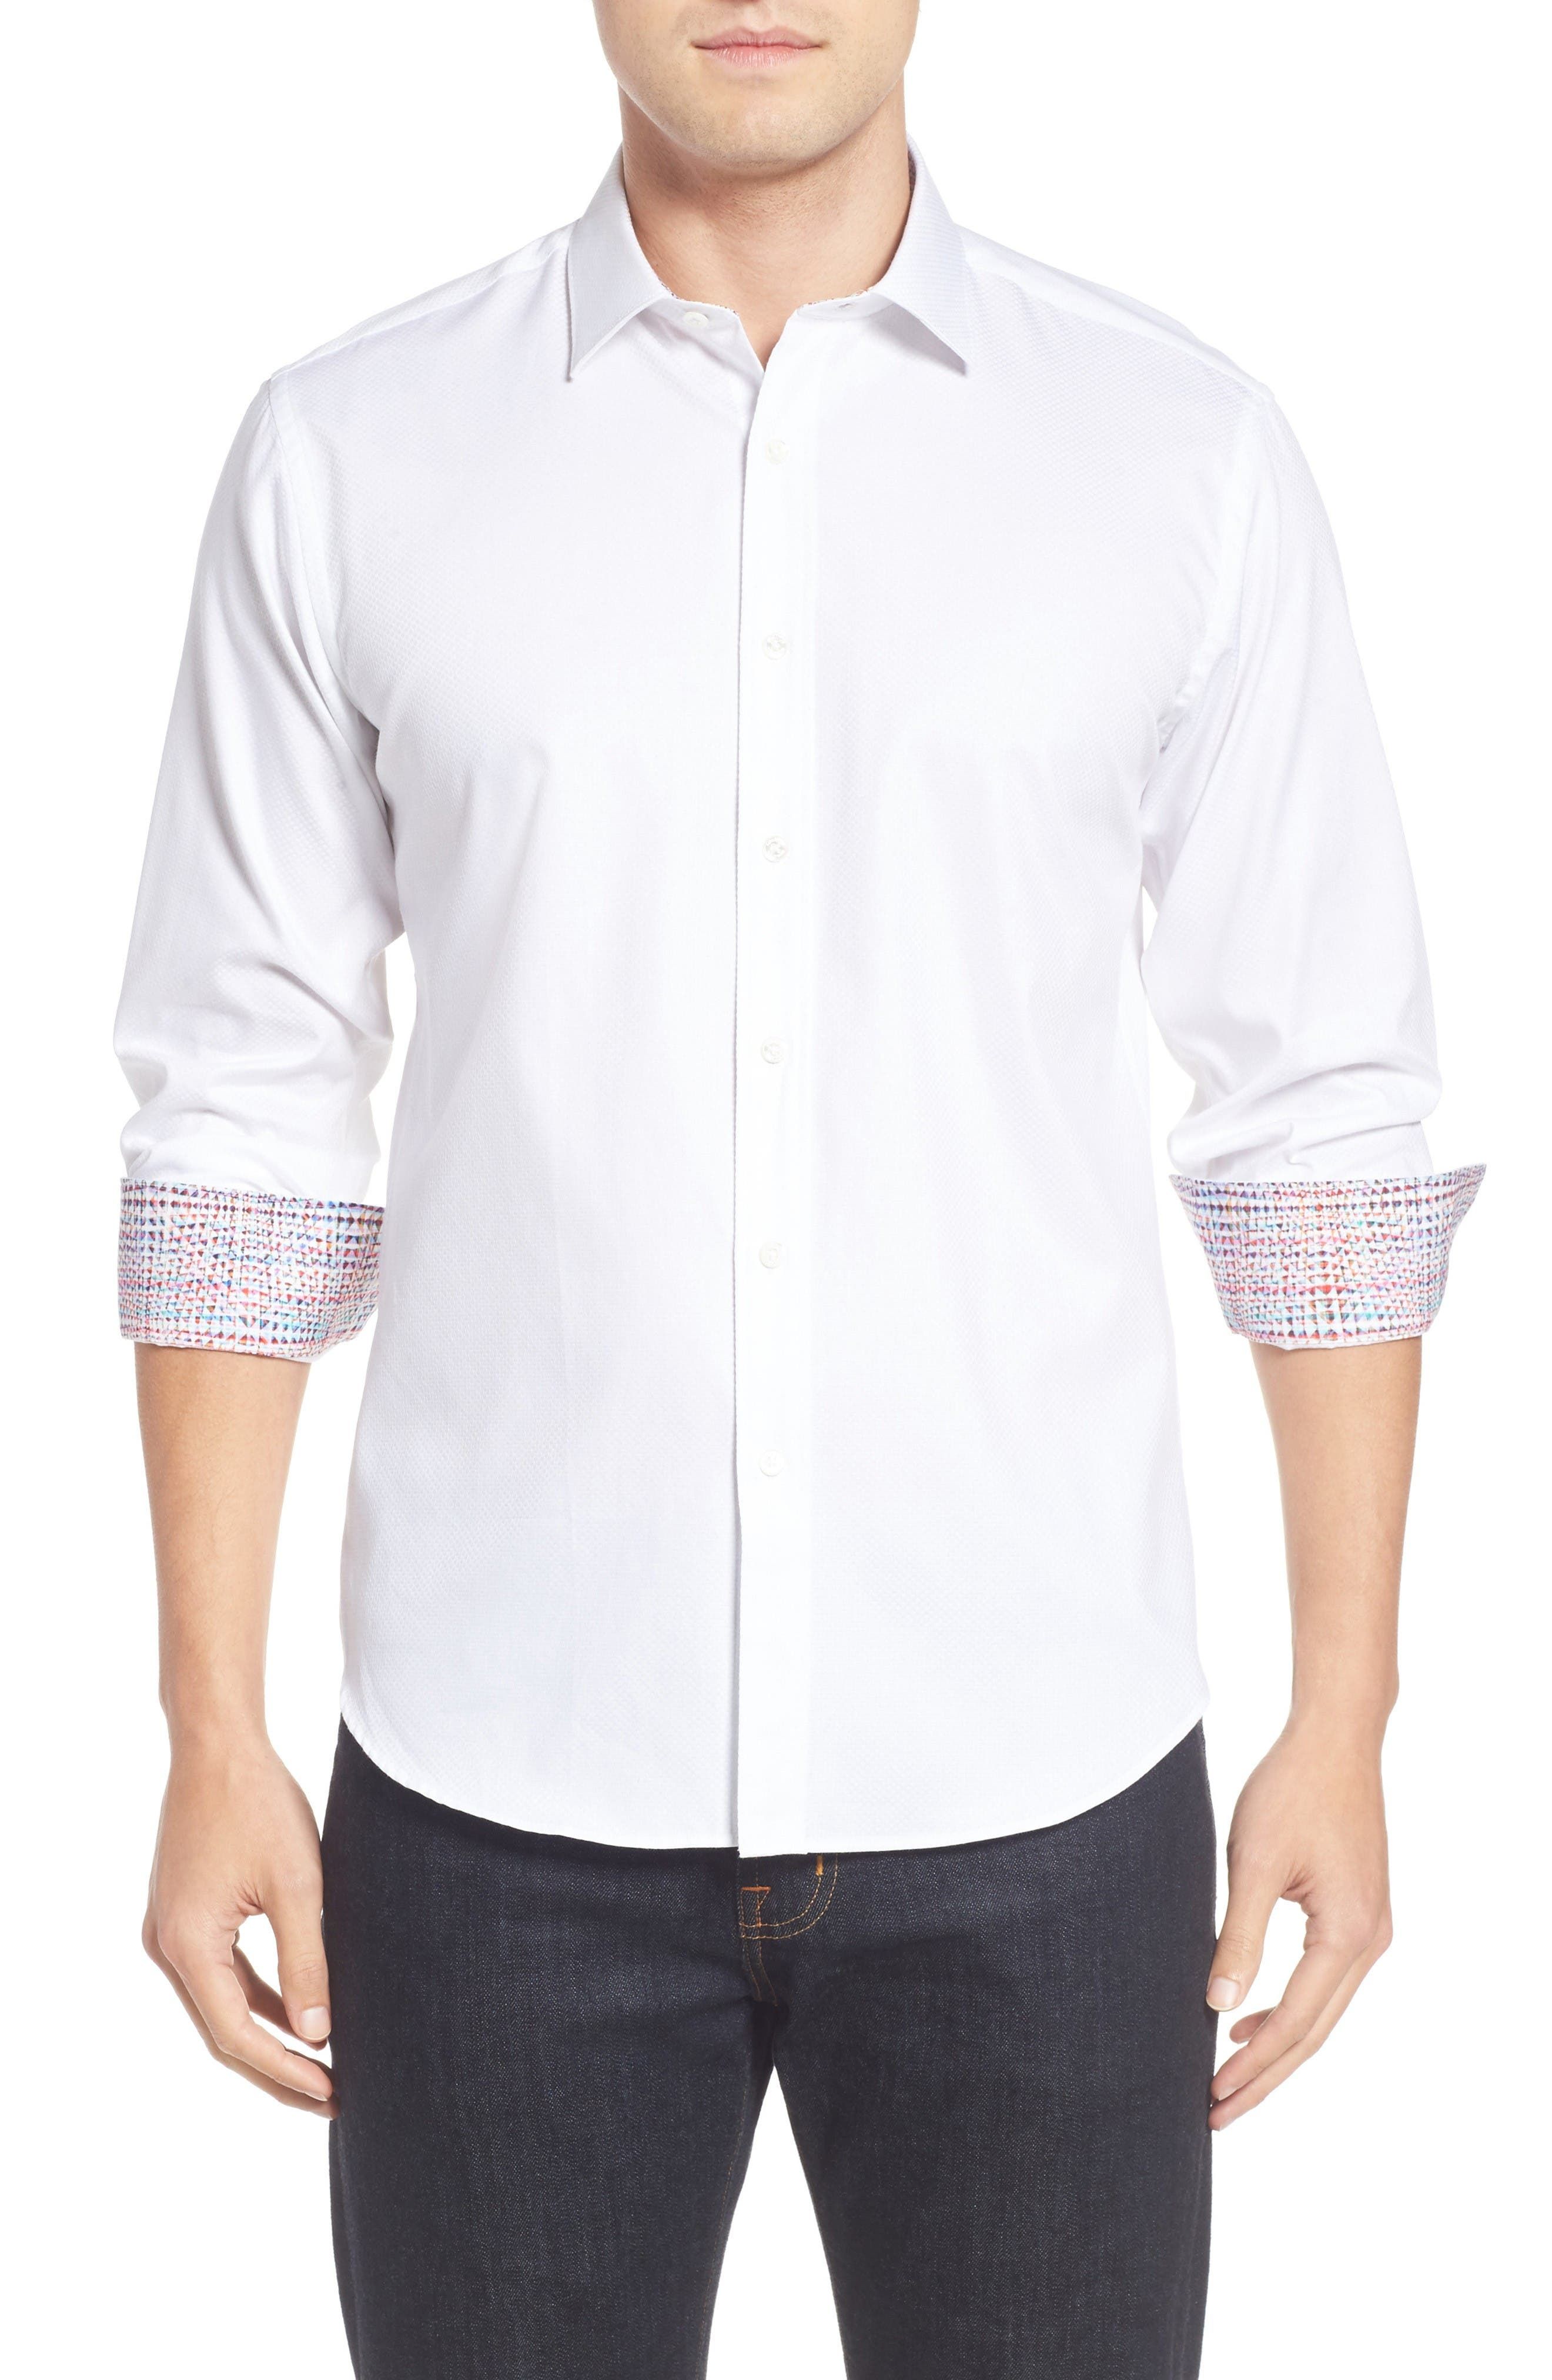 Main Image - Bugatchi Shaped Fit Textured Sport Shirt